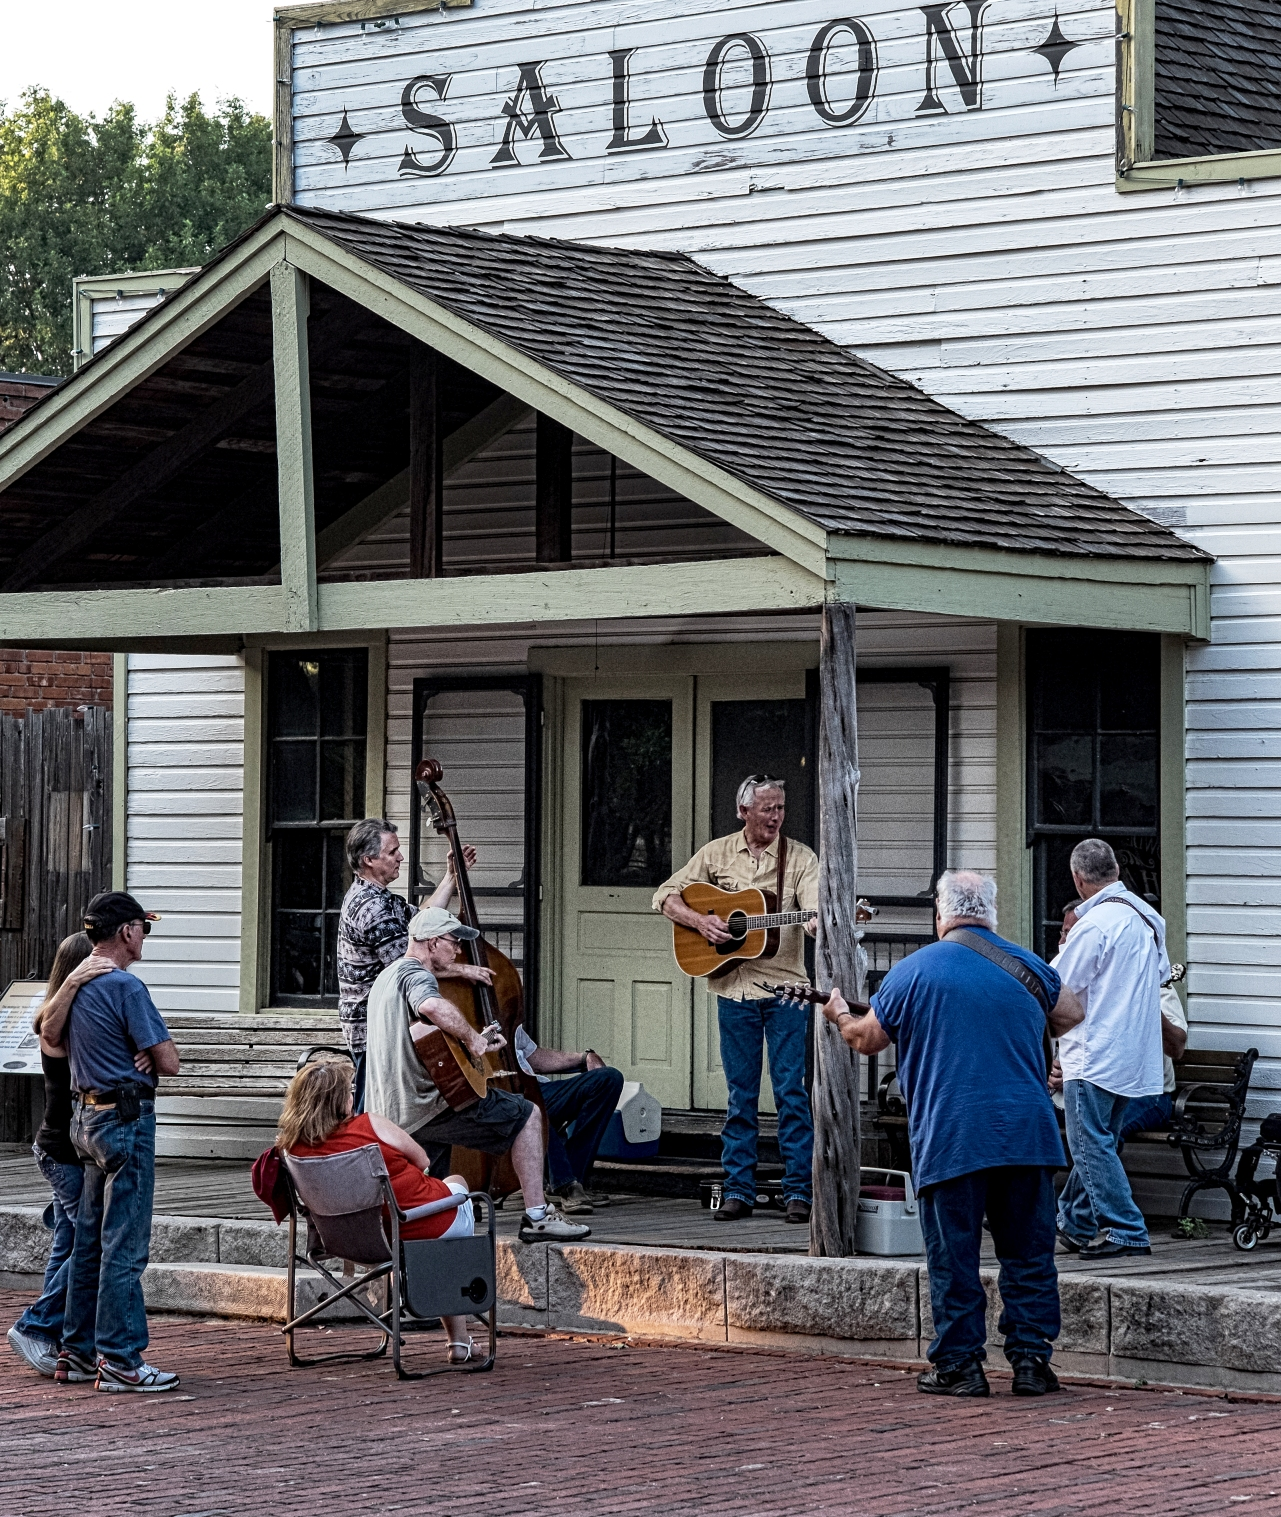 Jammers at Dallas Heritage Village Front Porch Showdown, May 2014. Courtesy John Jehman.